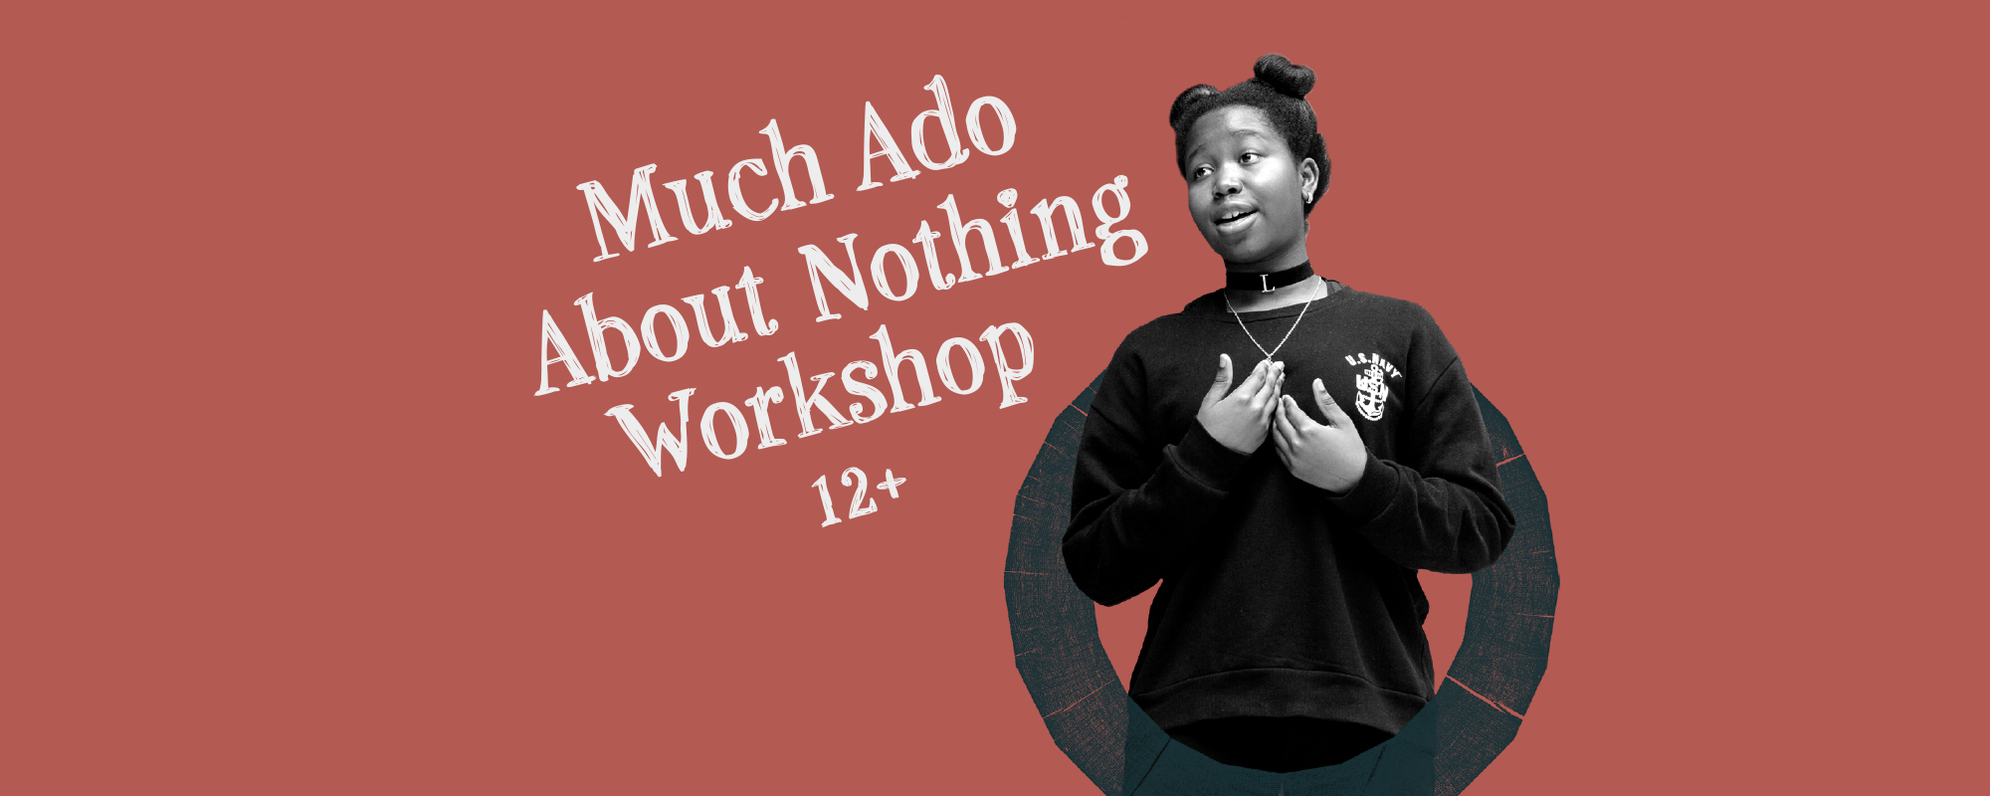 Text: Much Ado About Nothing Workshop Image of a Girl coming out of the roundel